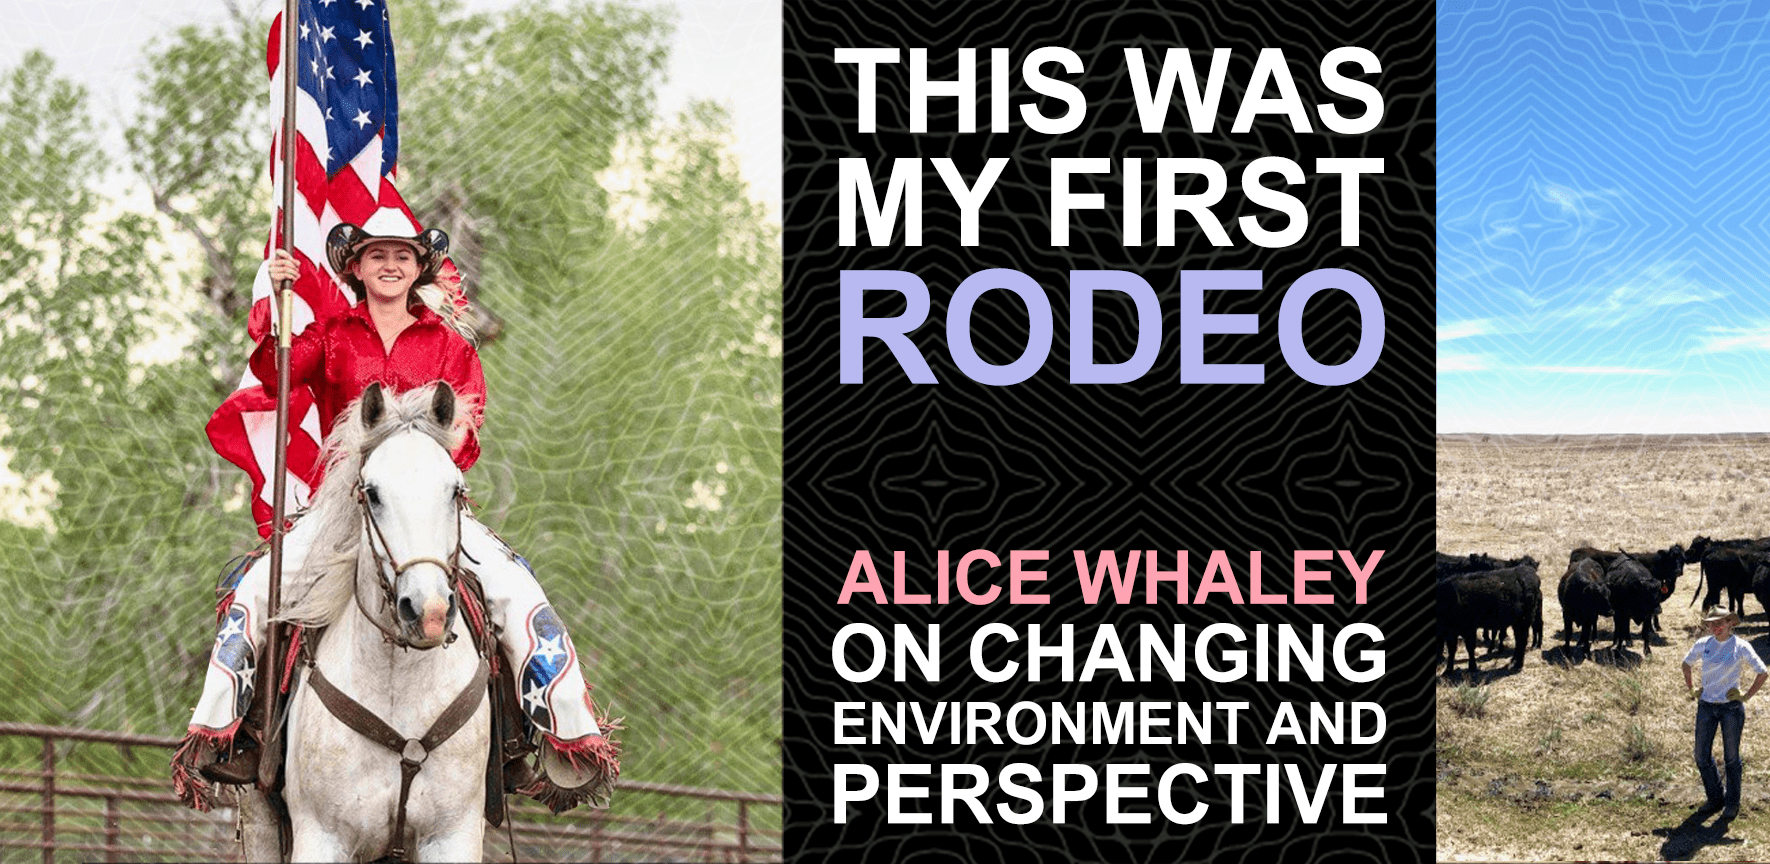 Alice Whaley riding a horse blog graphic